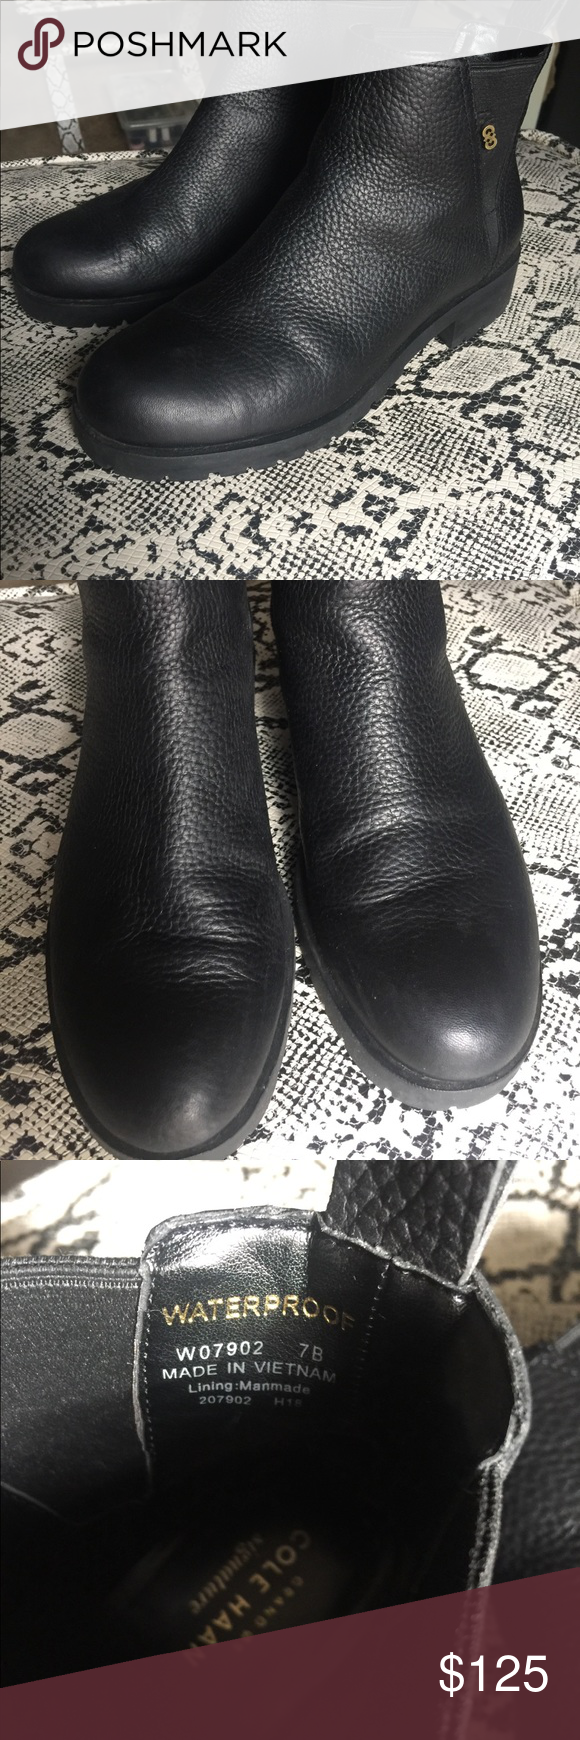 a11f7cf7c6d Cole Haan Gently Worn Calandra Bootie Size 7 Waterproof construction ...